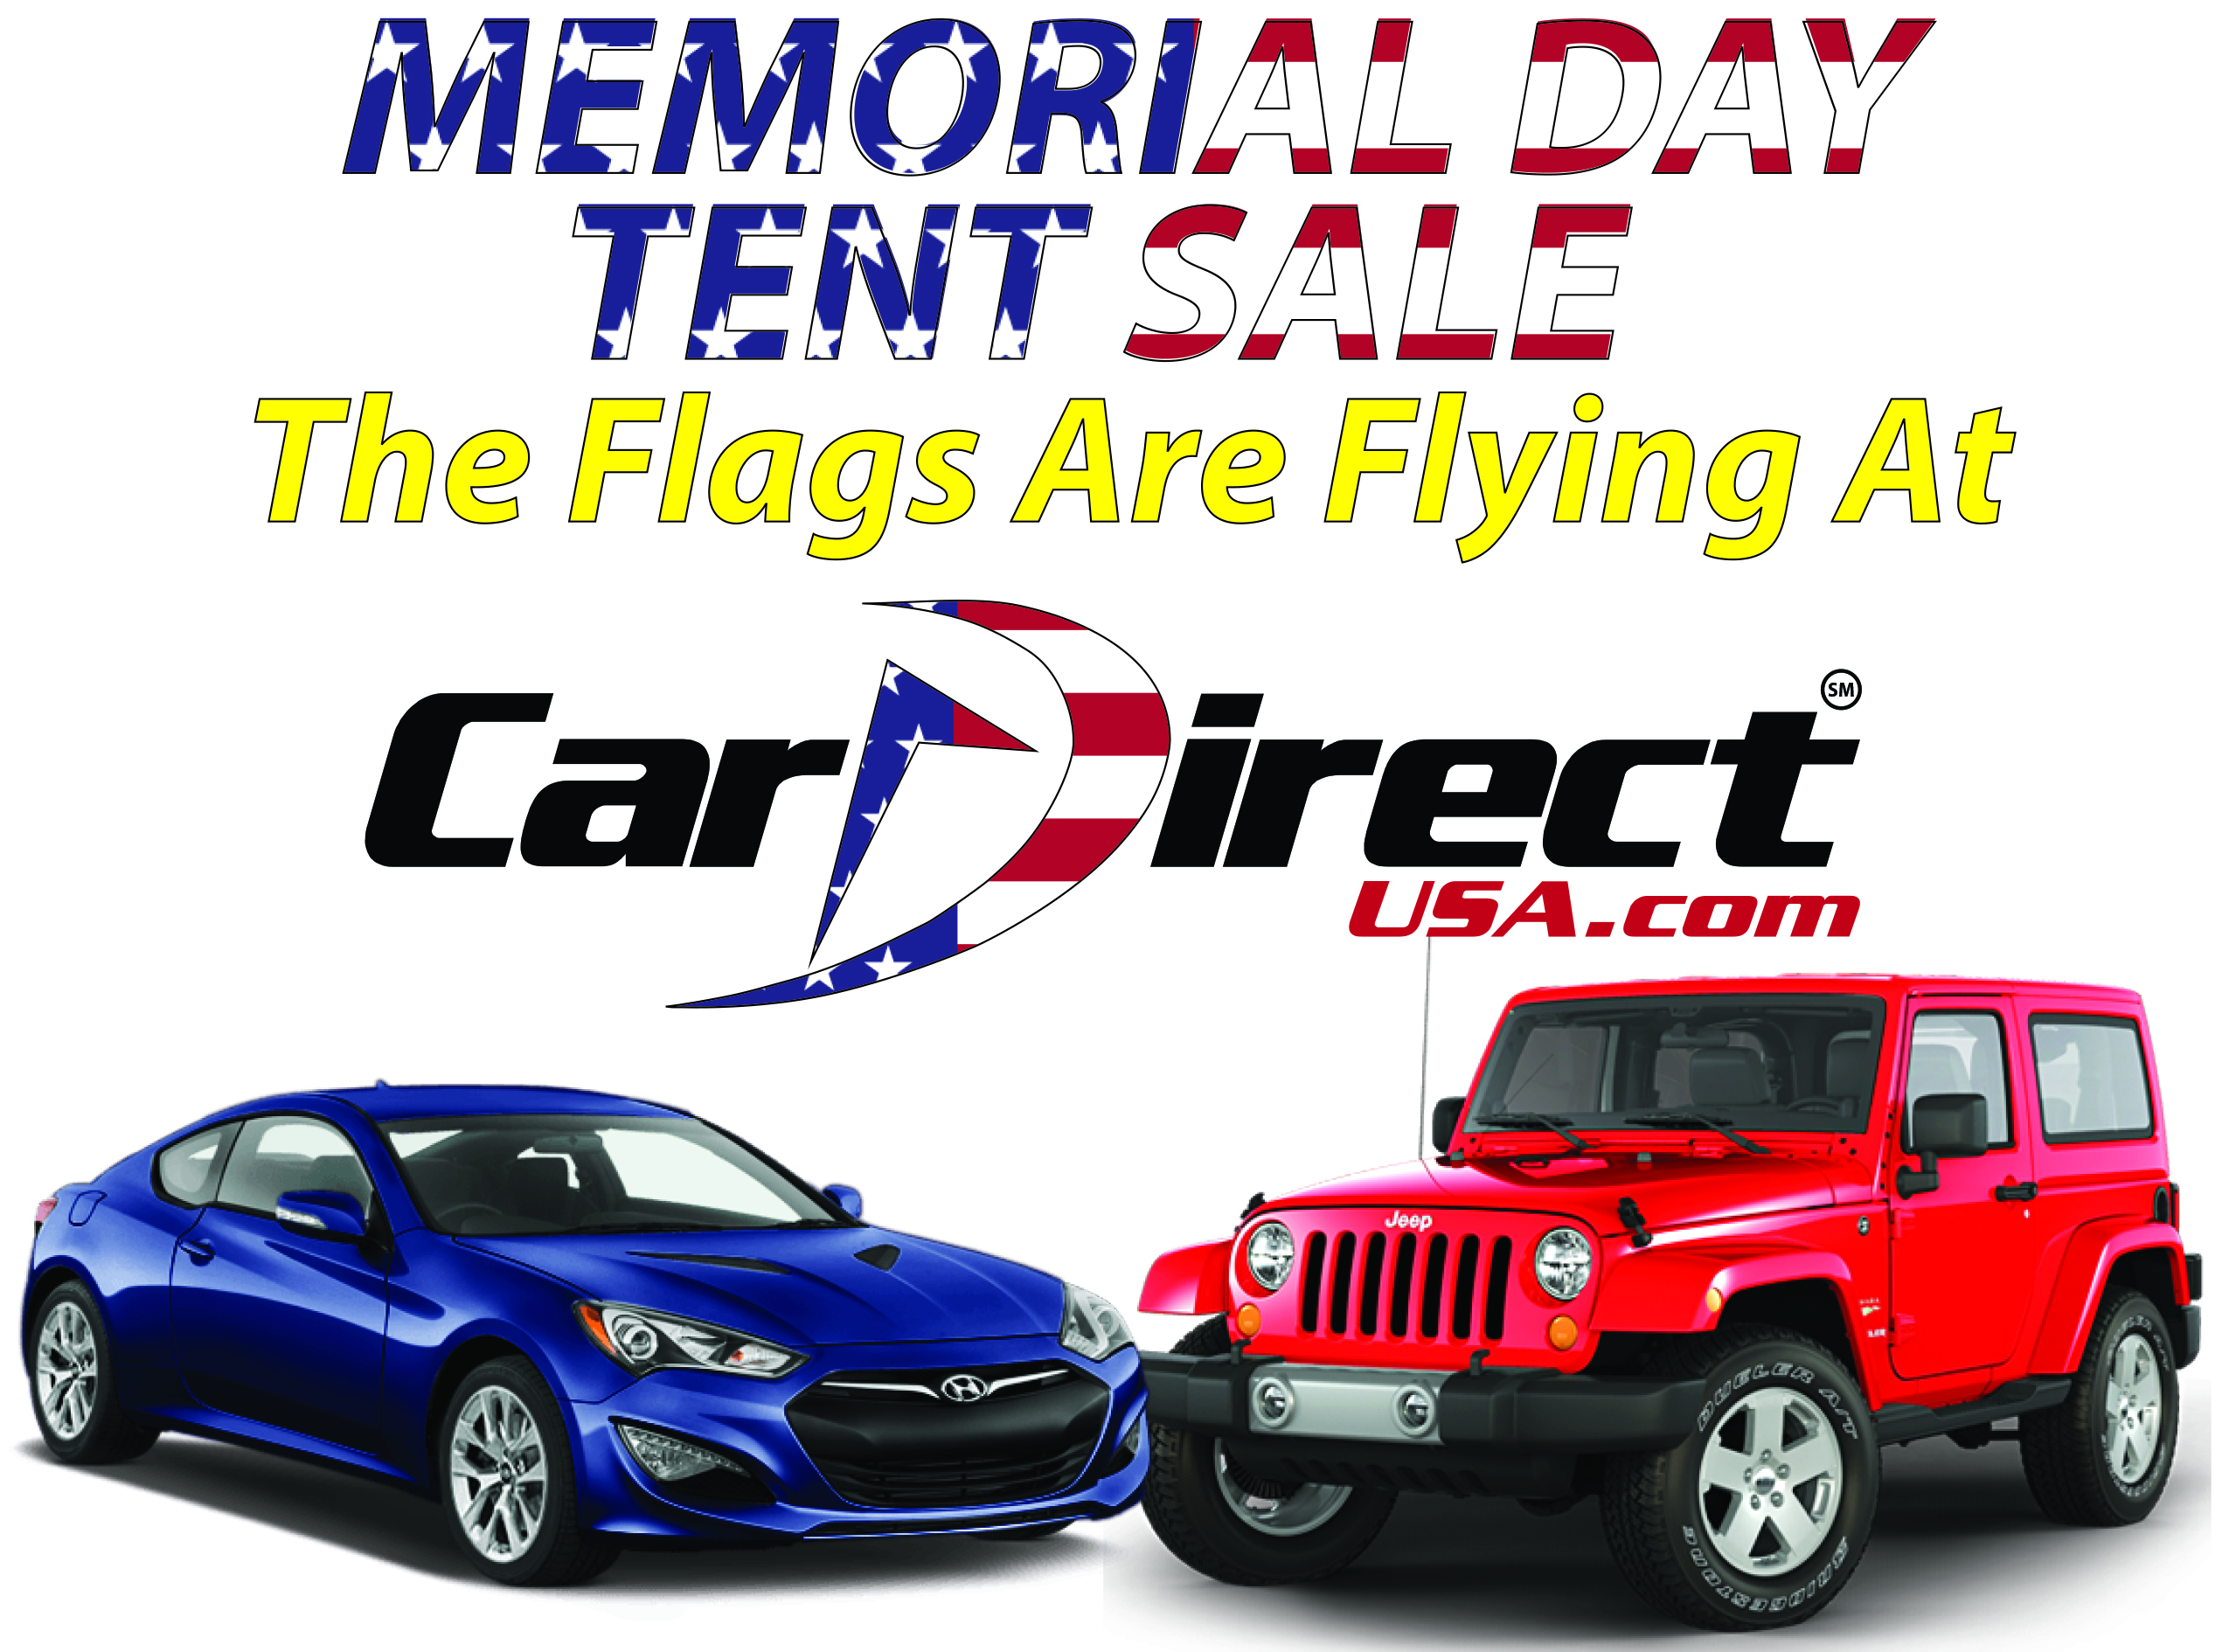 tags $250 off car direct car direct usa memorial day shoreline tent sale trucks used car dealers used cars posted in dealer information